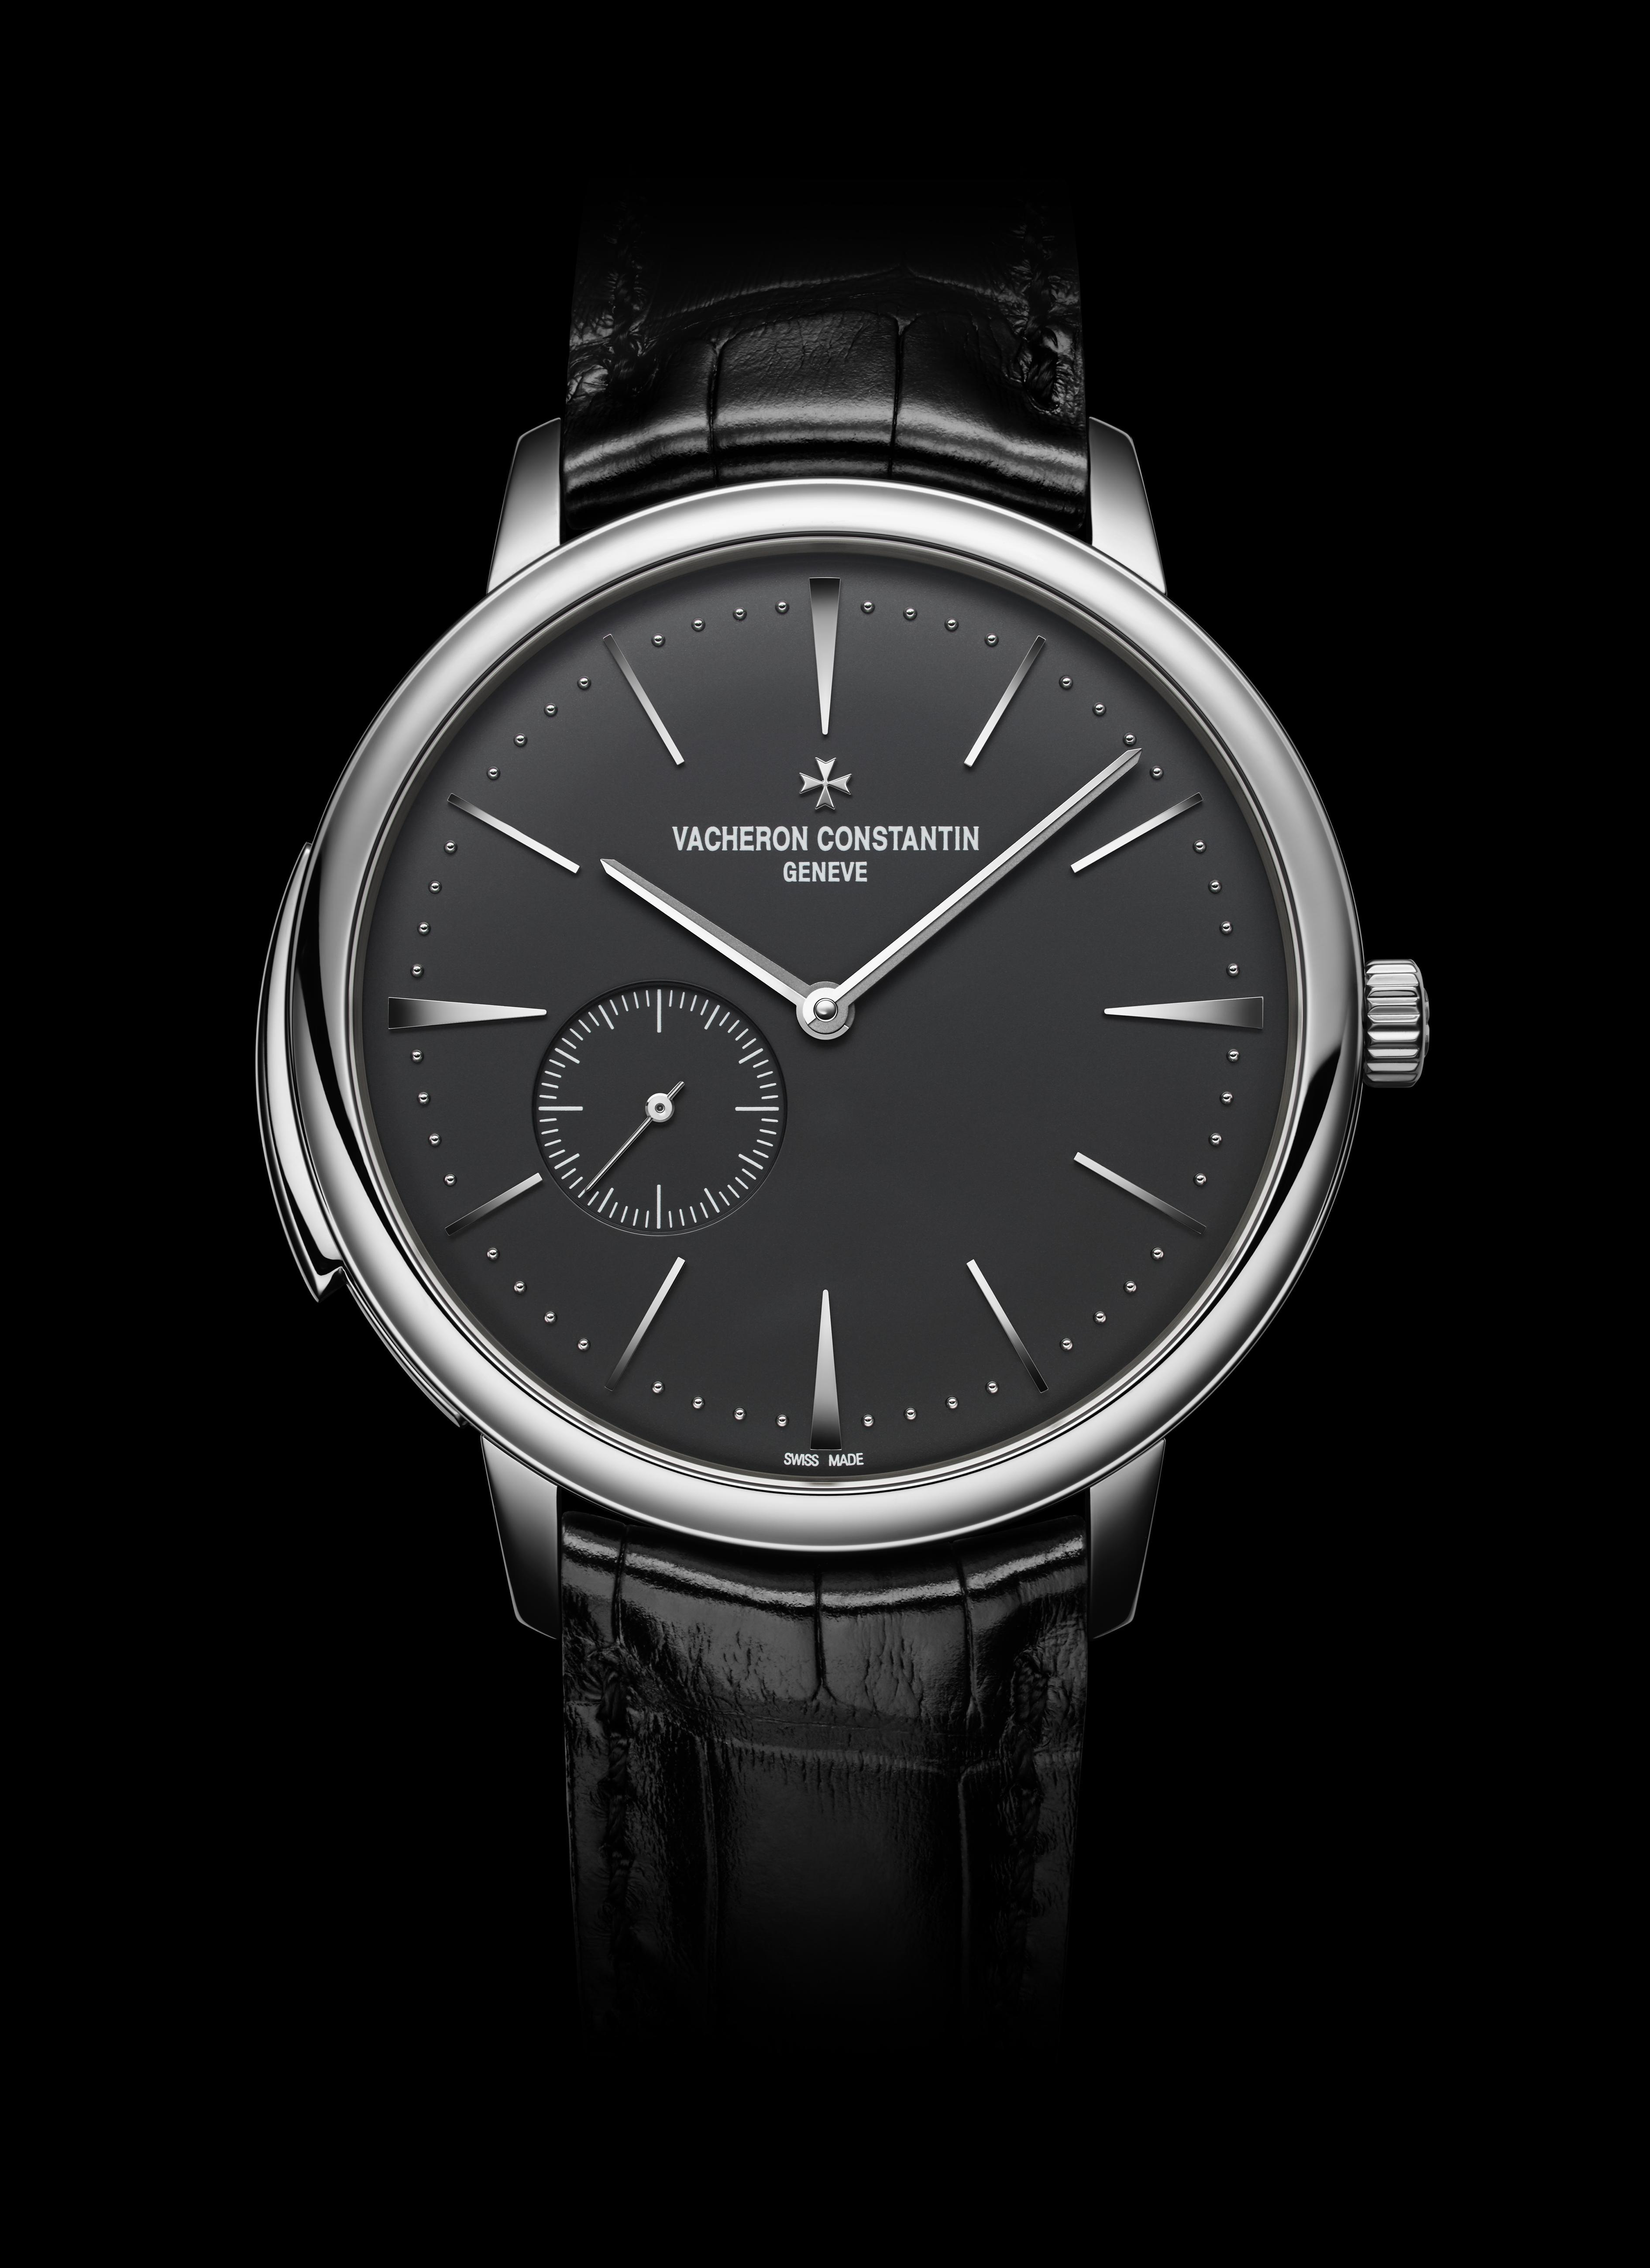 Vacheron Constantin Patrimony Ultra-Thin Minute Repeater in Platinum.